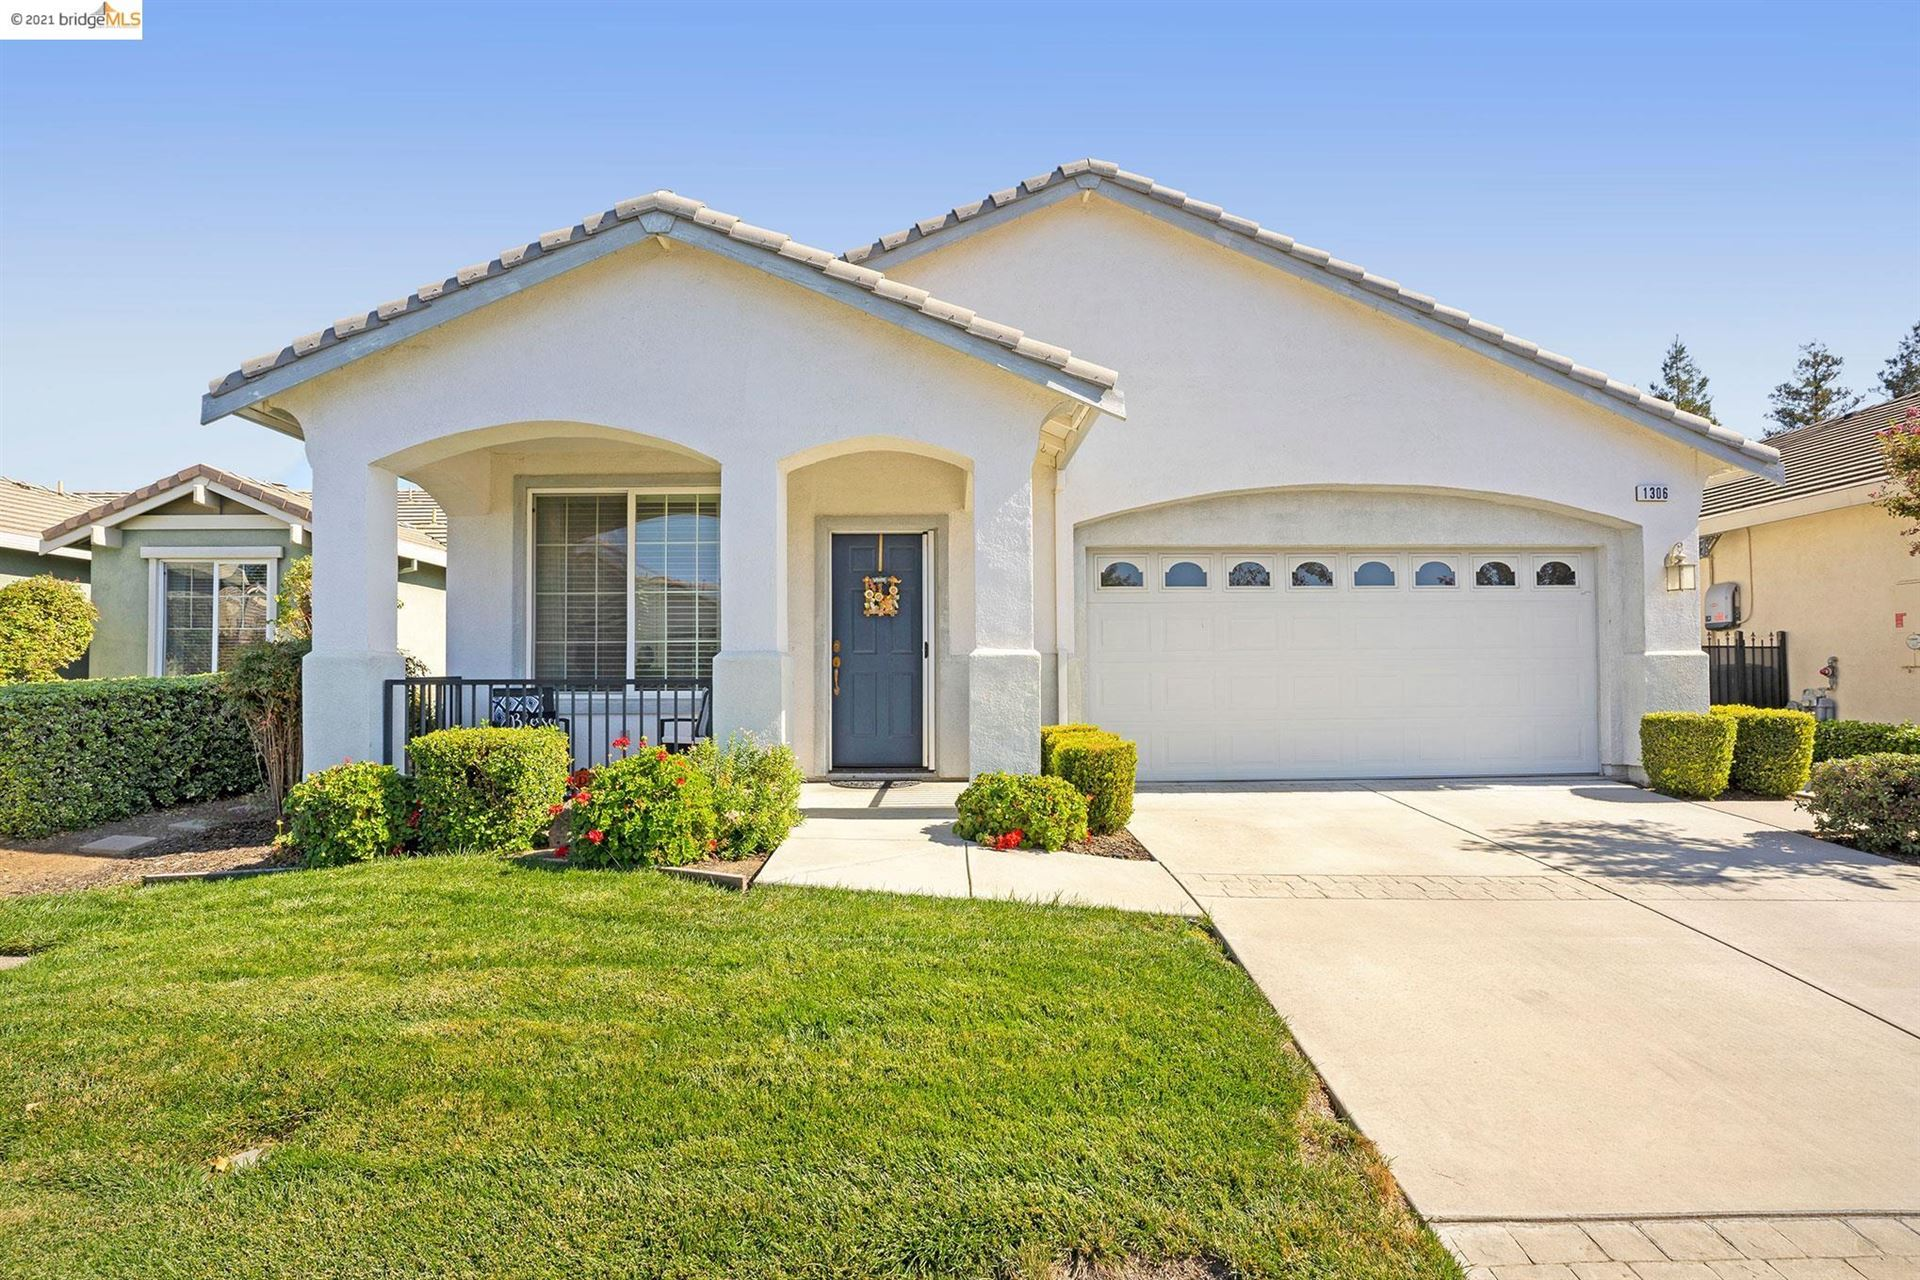 Photo of 1306 Pearl Way, Brentwood, CA 94513 (MLS # 40971264)